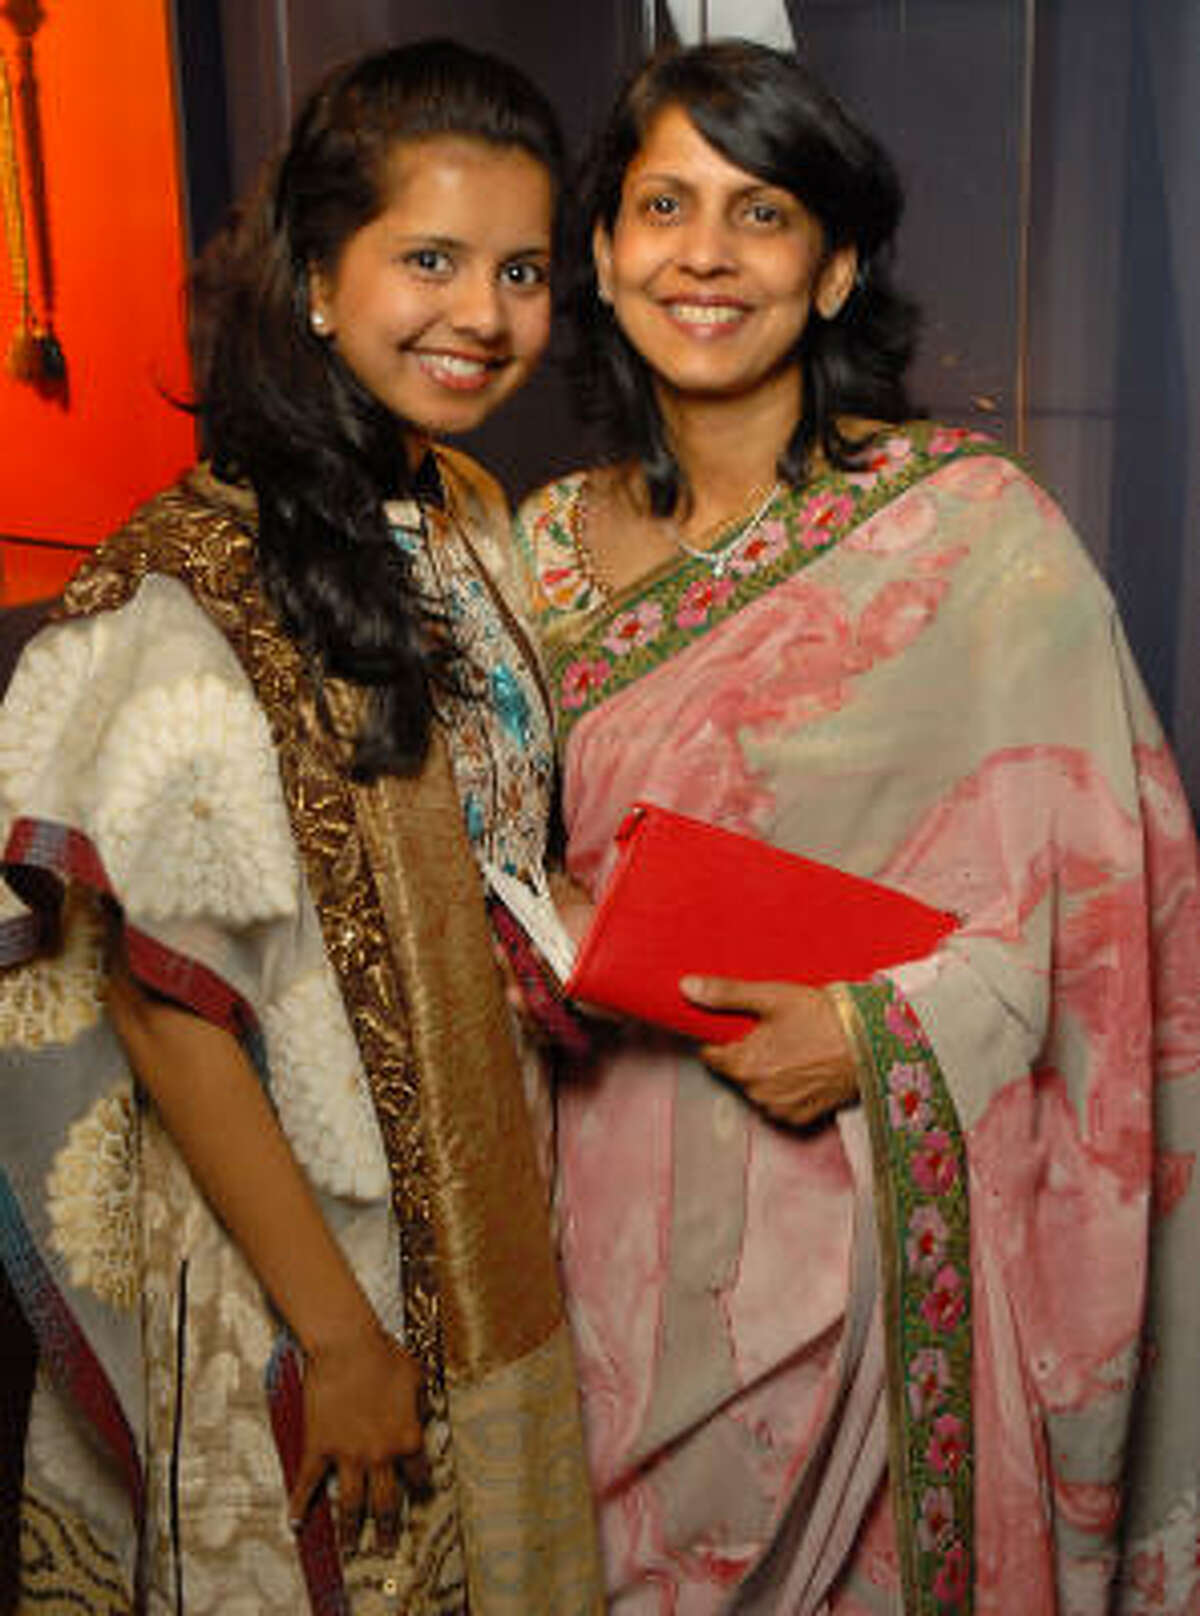 Neha and Anjali Agrawal